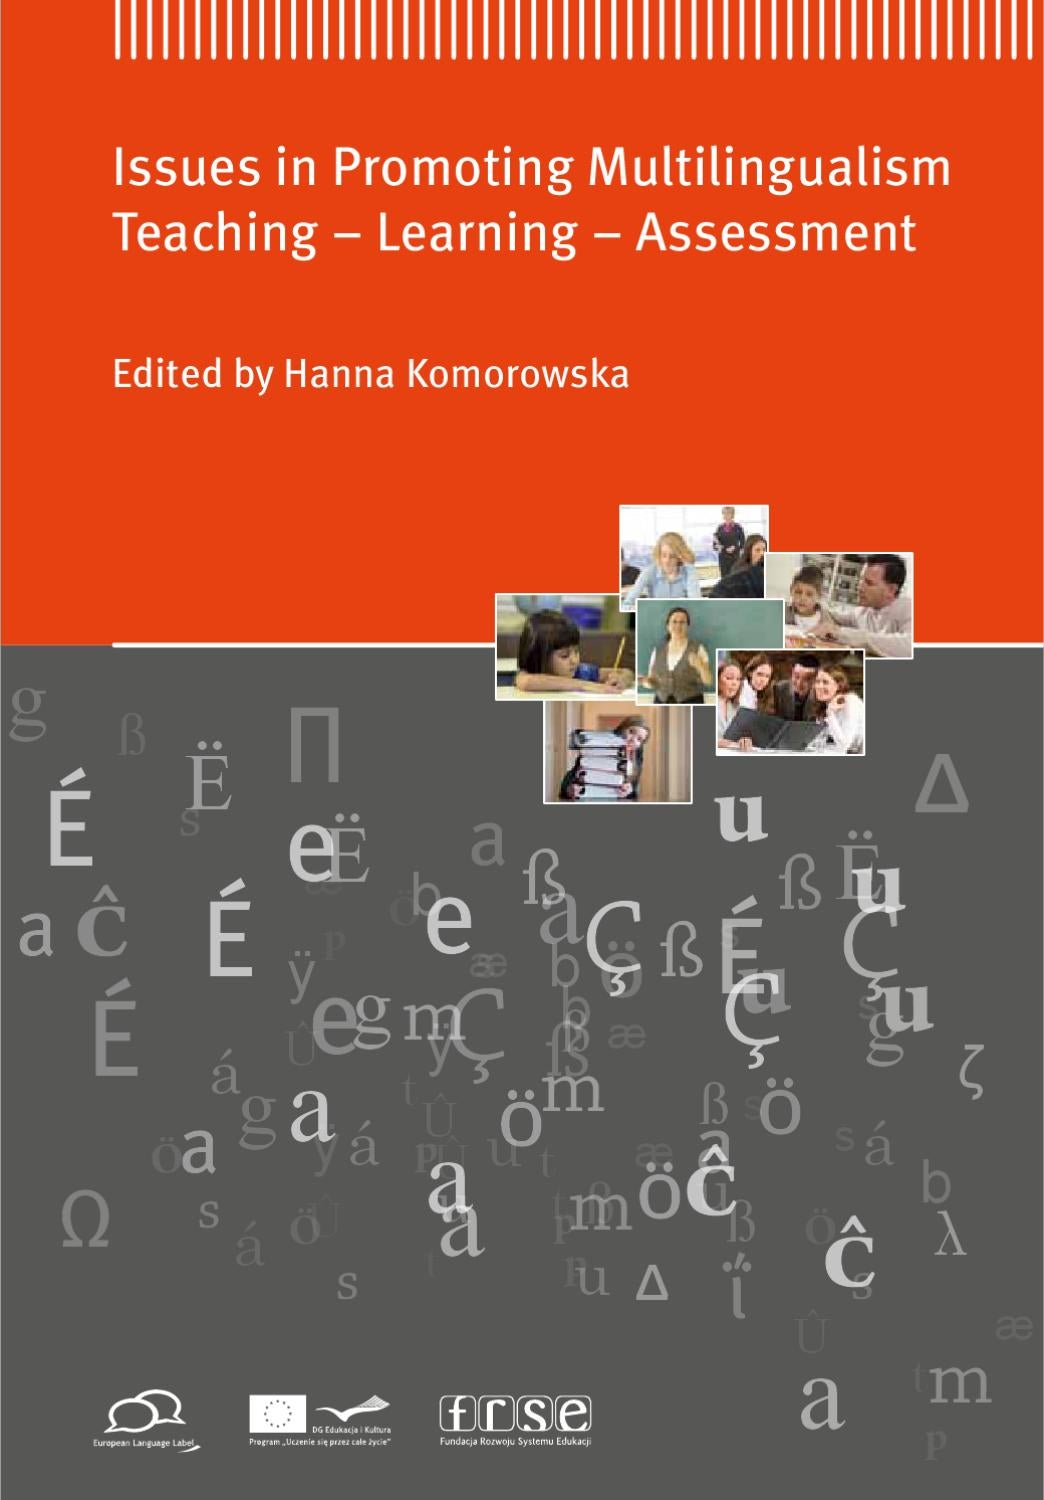 Issues in promoting multilingualism teaching learning issues in promoting multilingualism teaching learning assessment by fundacja rozwoju systemu edukacji issuu fandeluxe Gallery